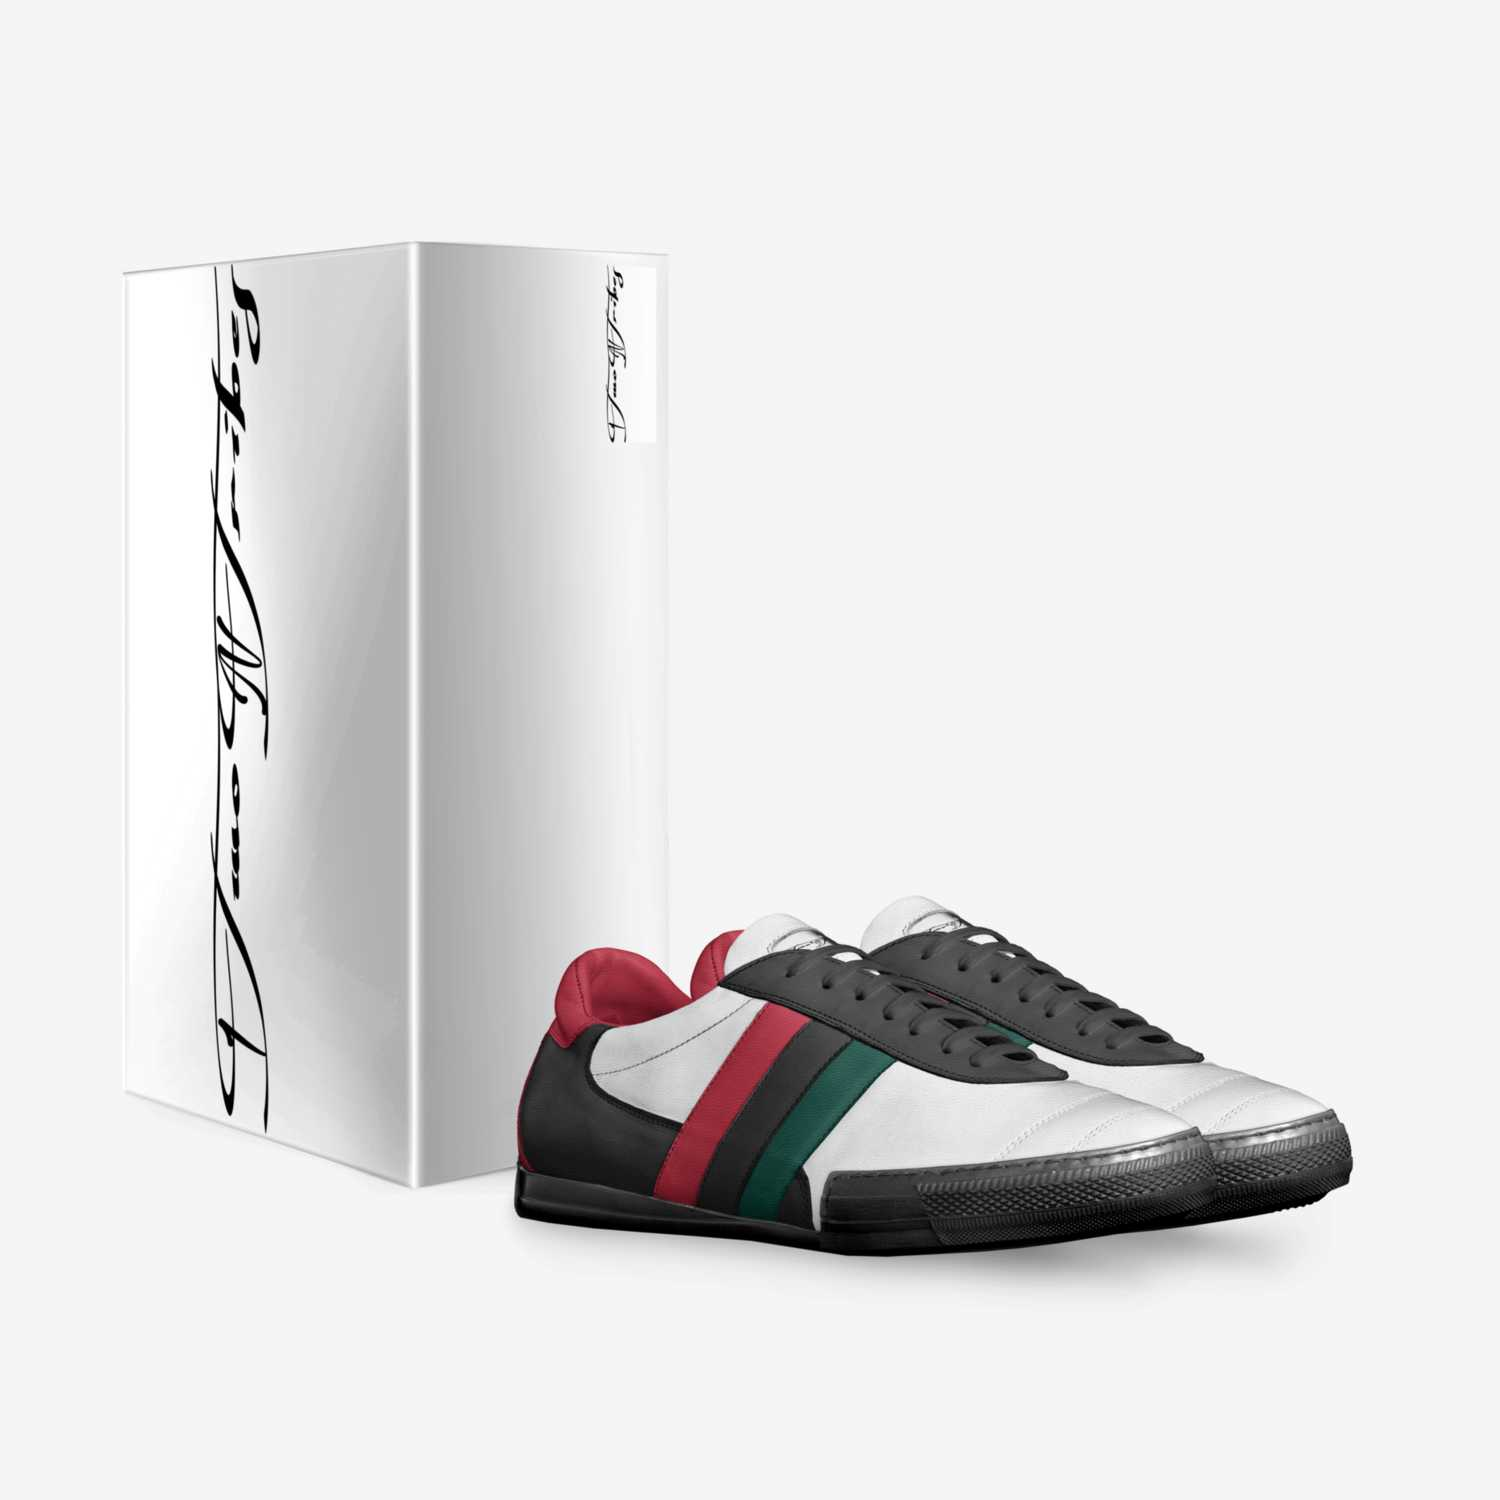 This sporty sneaker is made for fashion. Grants perfect fitting and very high performances. The sole is designed with a back-spoiler and half toe guard, the upper is made with a special 3-stripes flag.